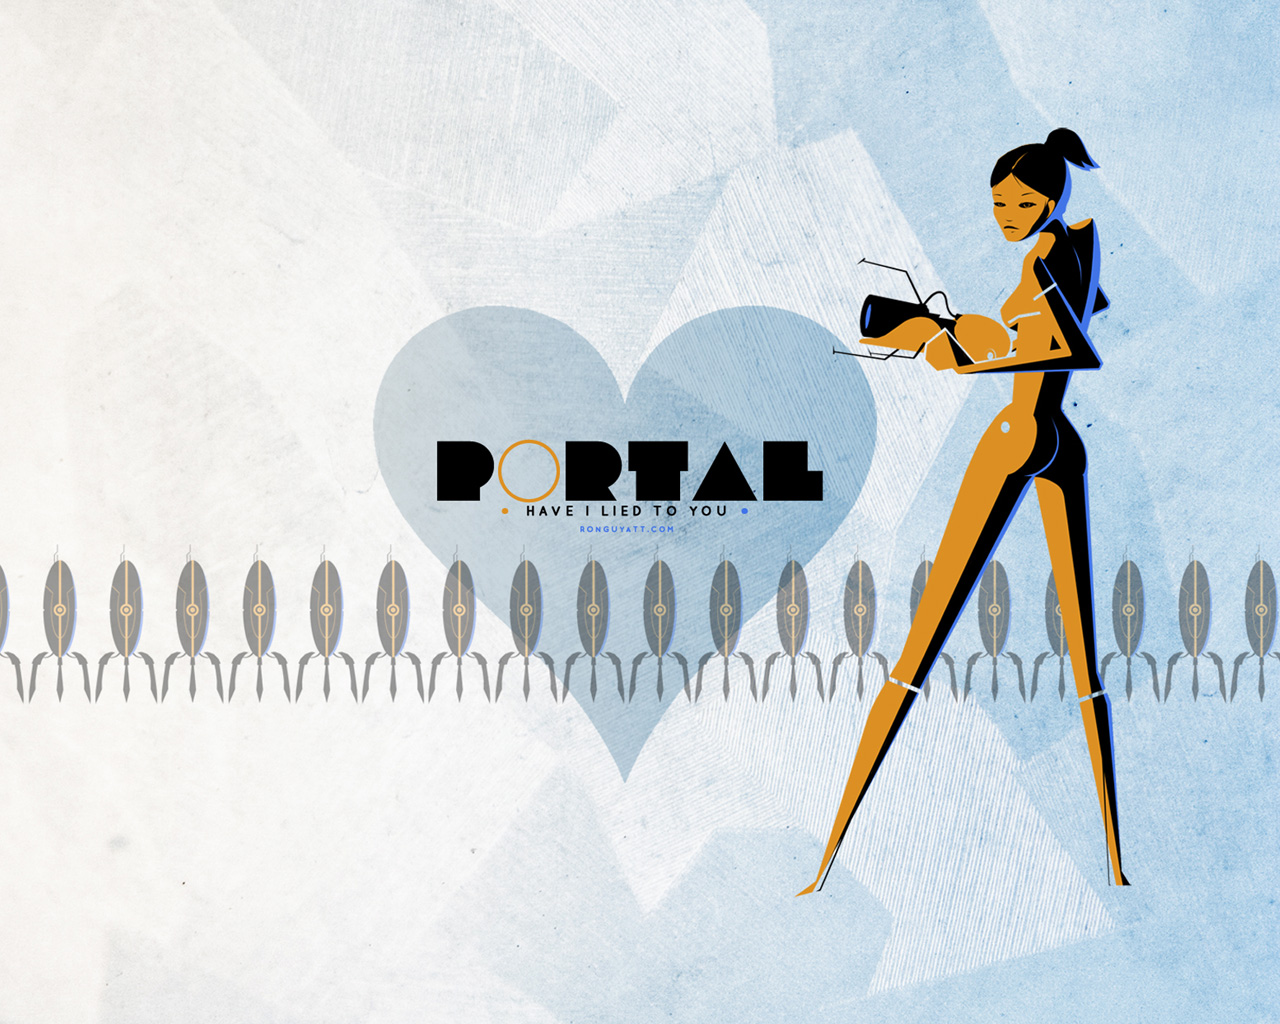 Free Portal Wallpaper in 1280x1024